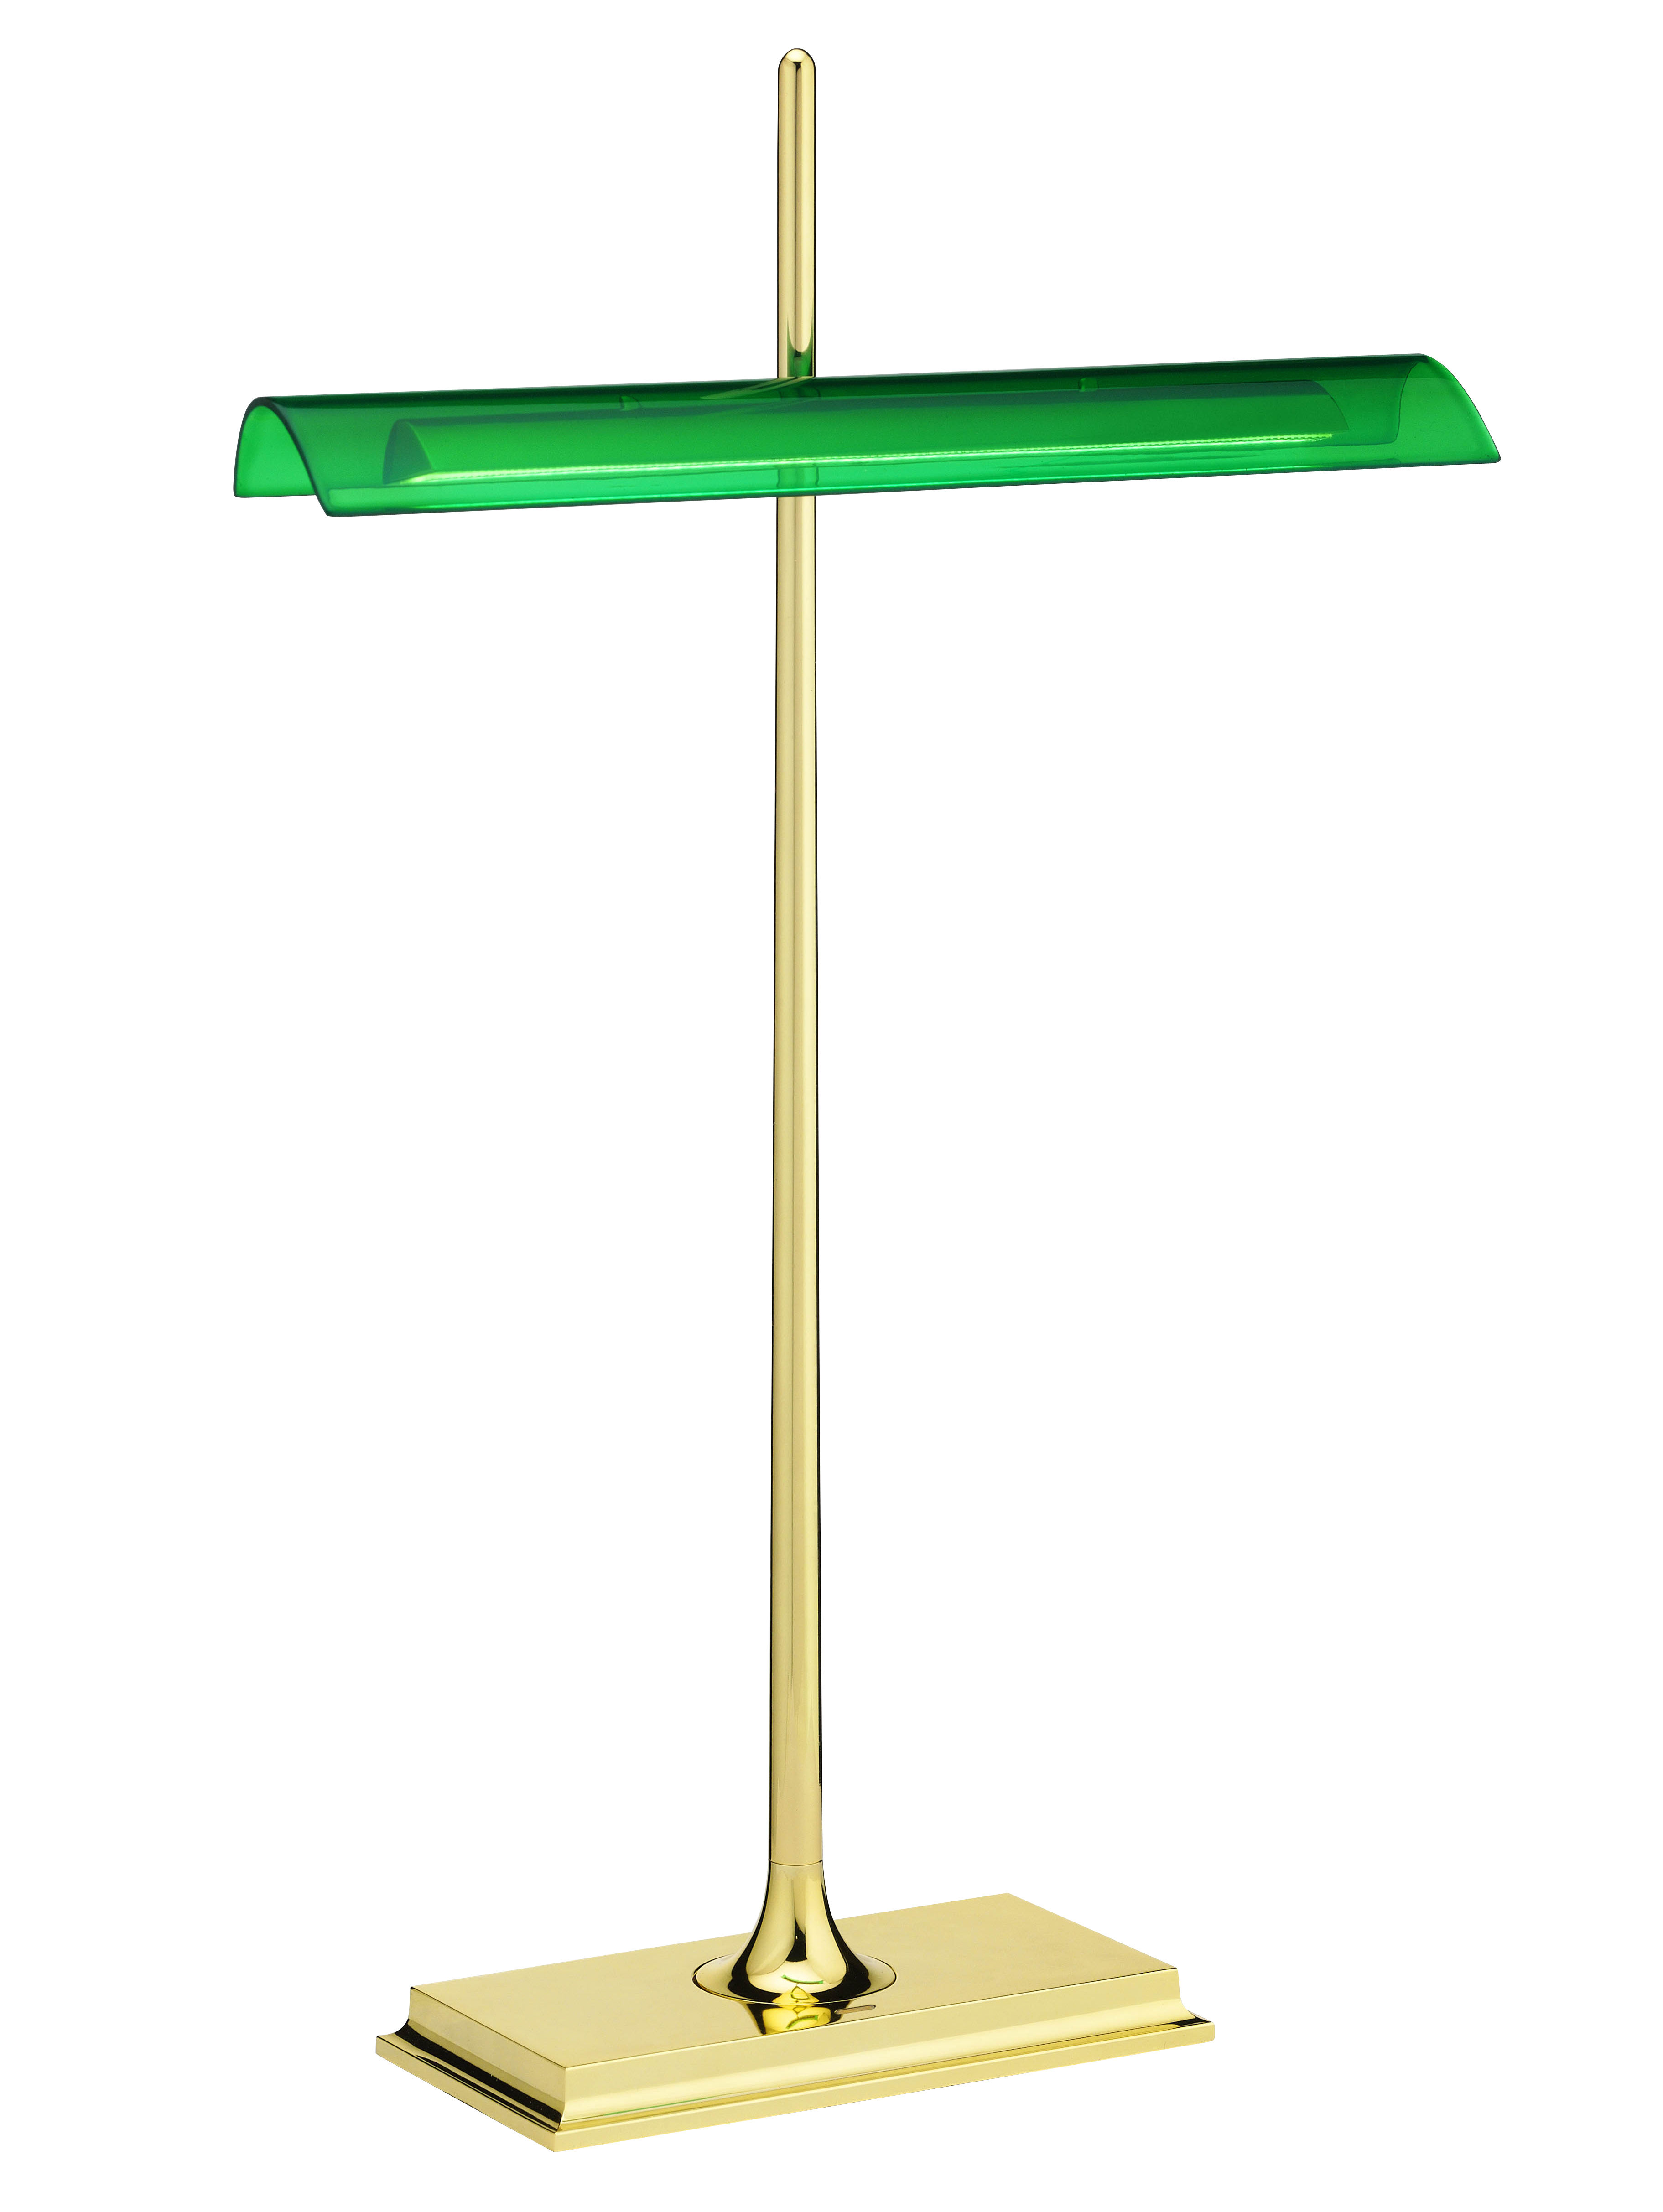 Lighting - Table Lamps - Goldman Table lamp by Flos - Green/ Brass structure - Methacrylate, Painted aluminium